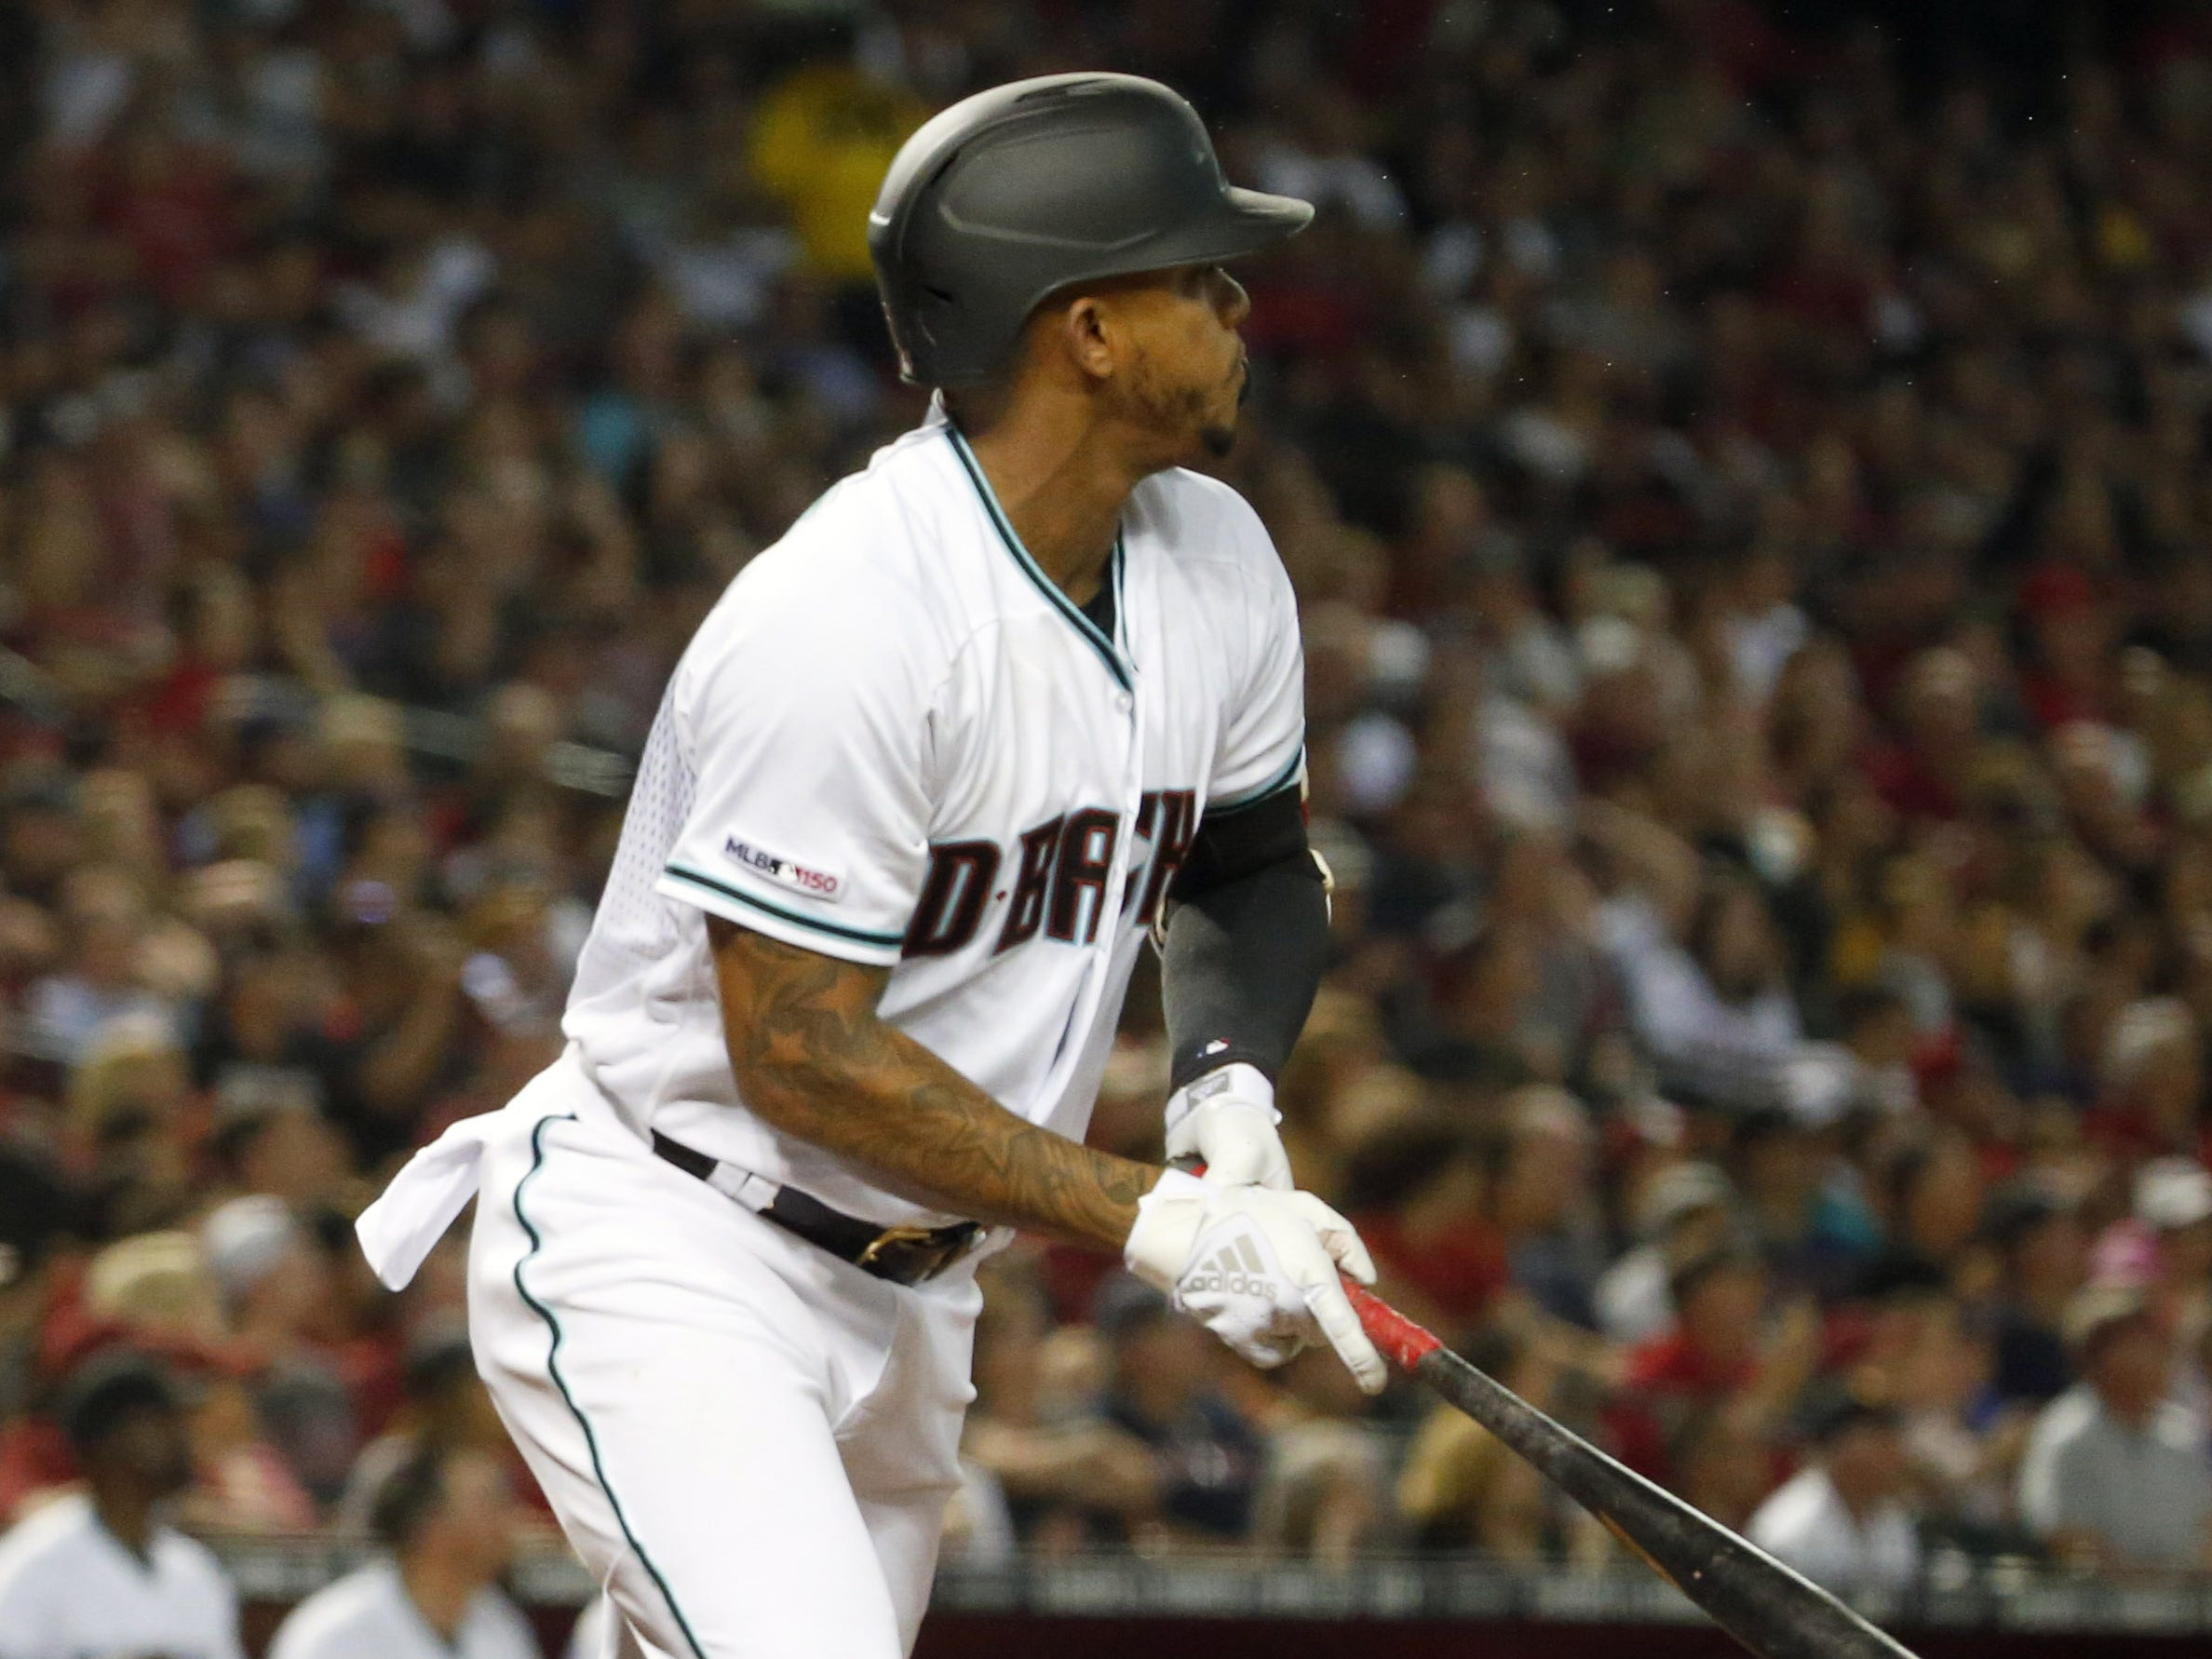 Arizona Diamondbacks shortstop Ketel Marte's (4) watches his grand slam ball in the sixth inning of a Opening Day game  against Boston Red Sox at Chase Field in Phoenix on April 5.